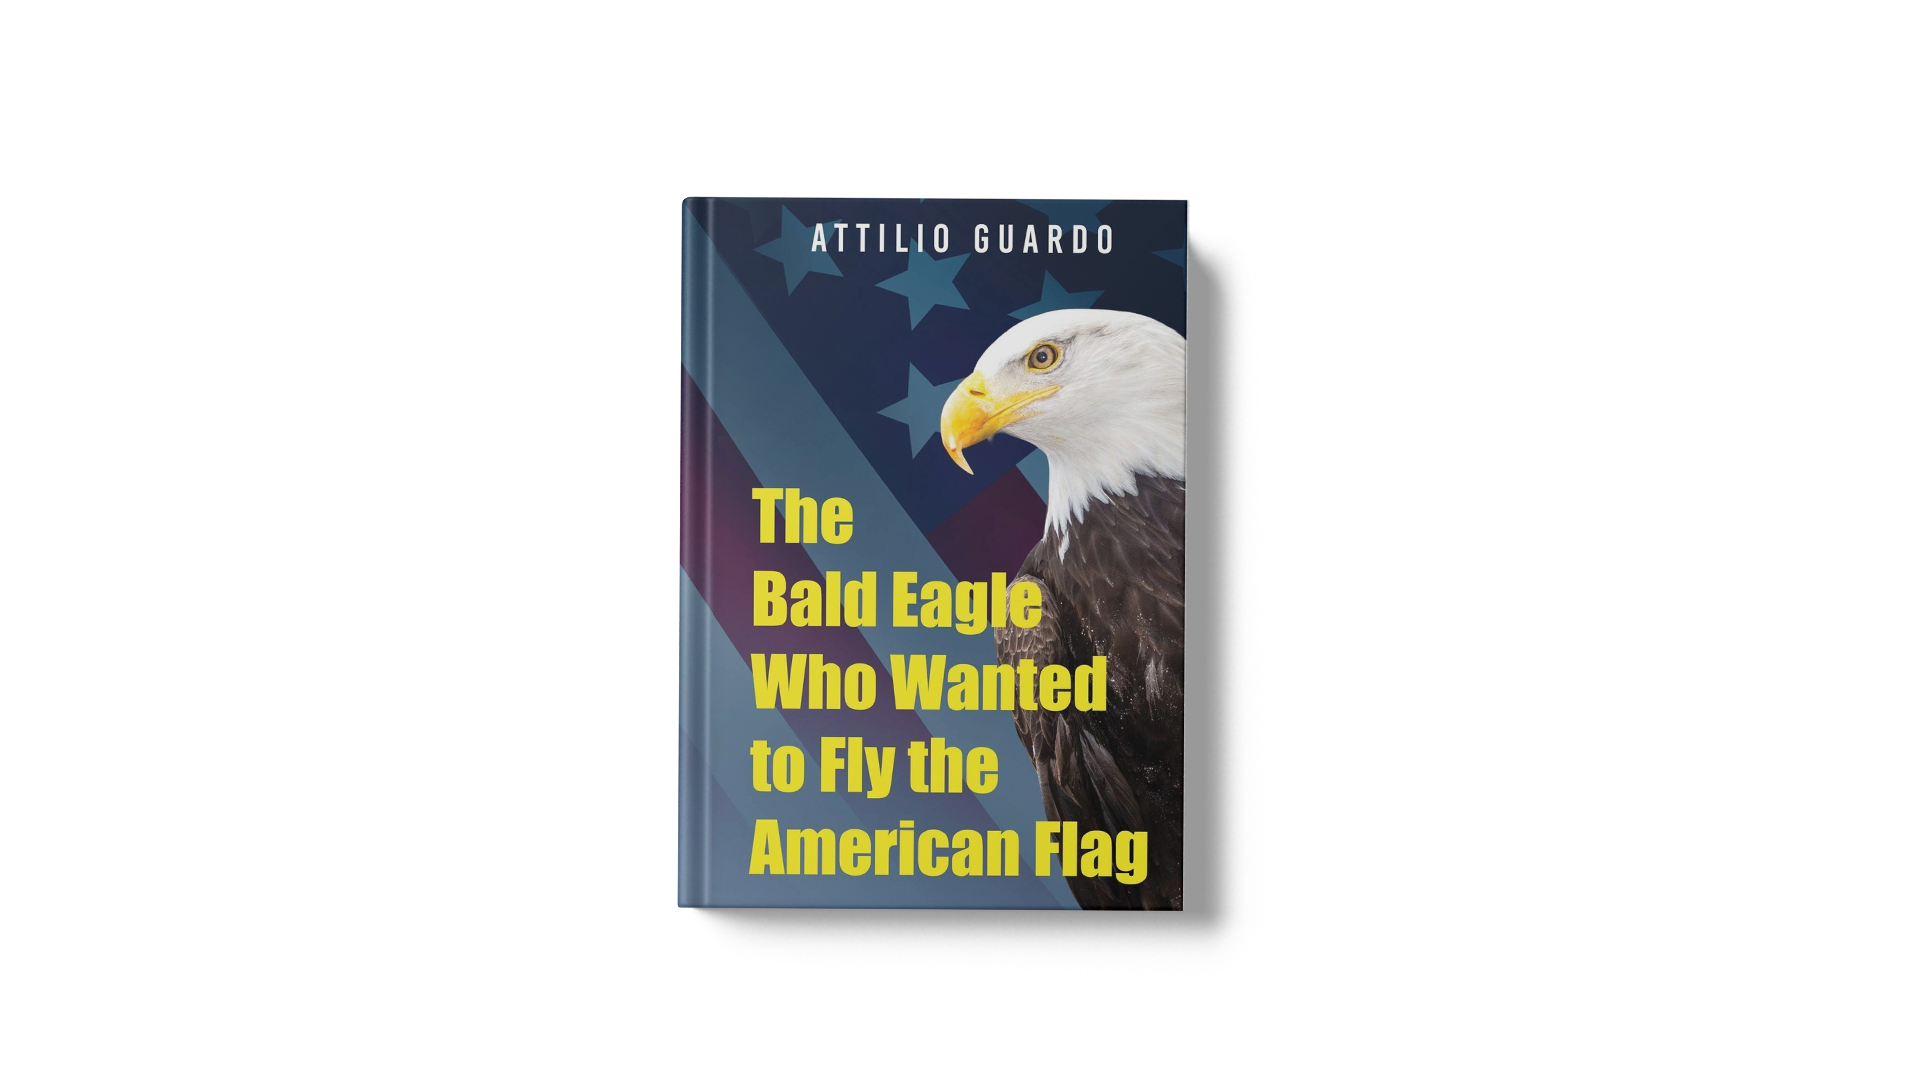 The Bald Eagle Who Wanted to Fly the American Flag by Attilio Guardo banner